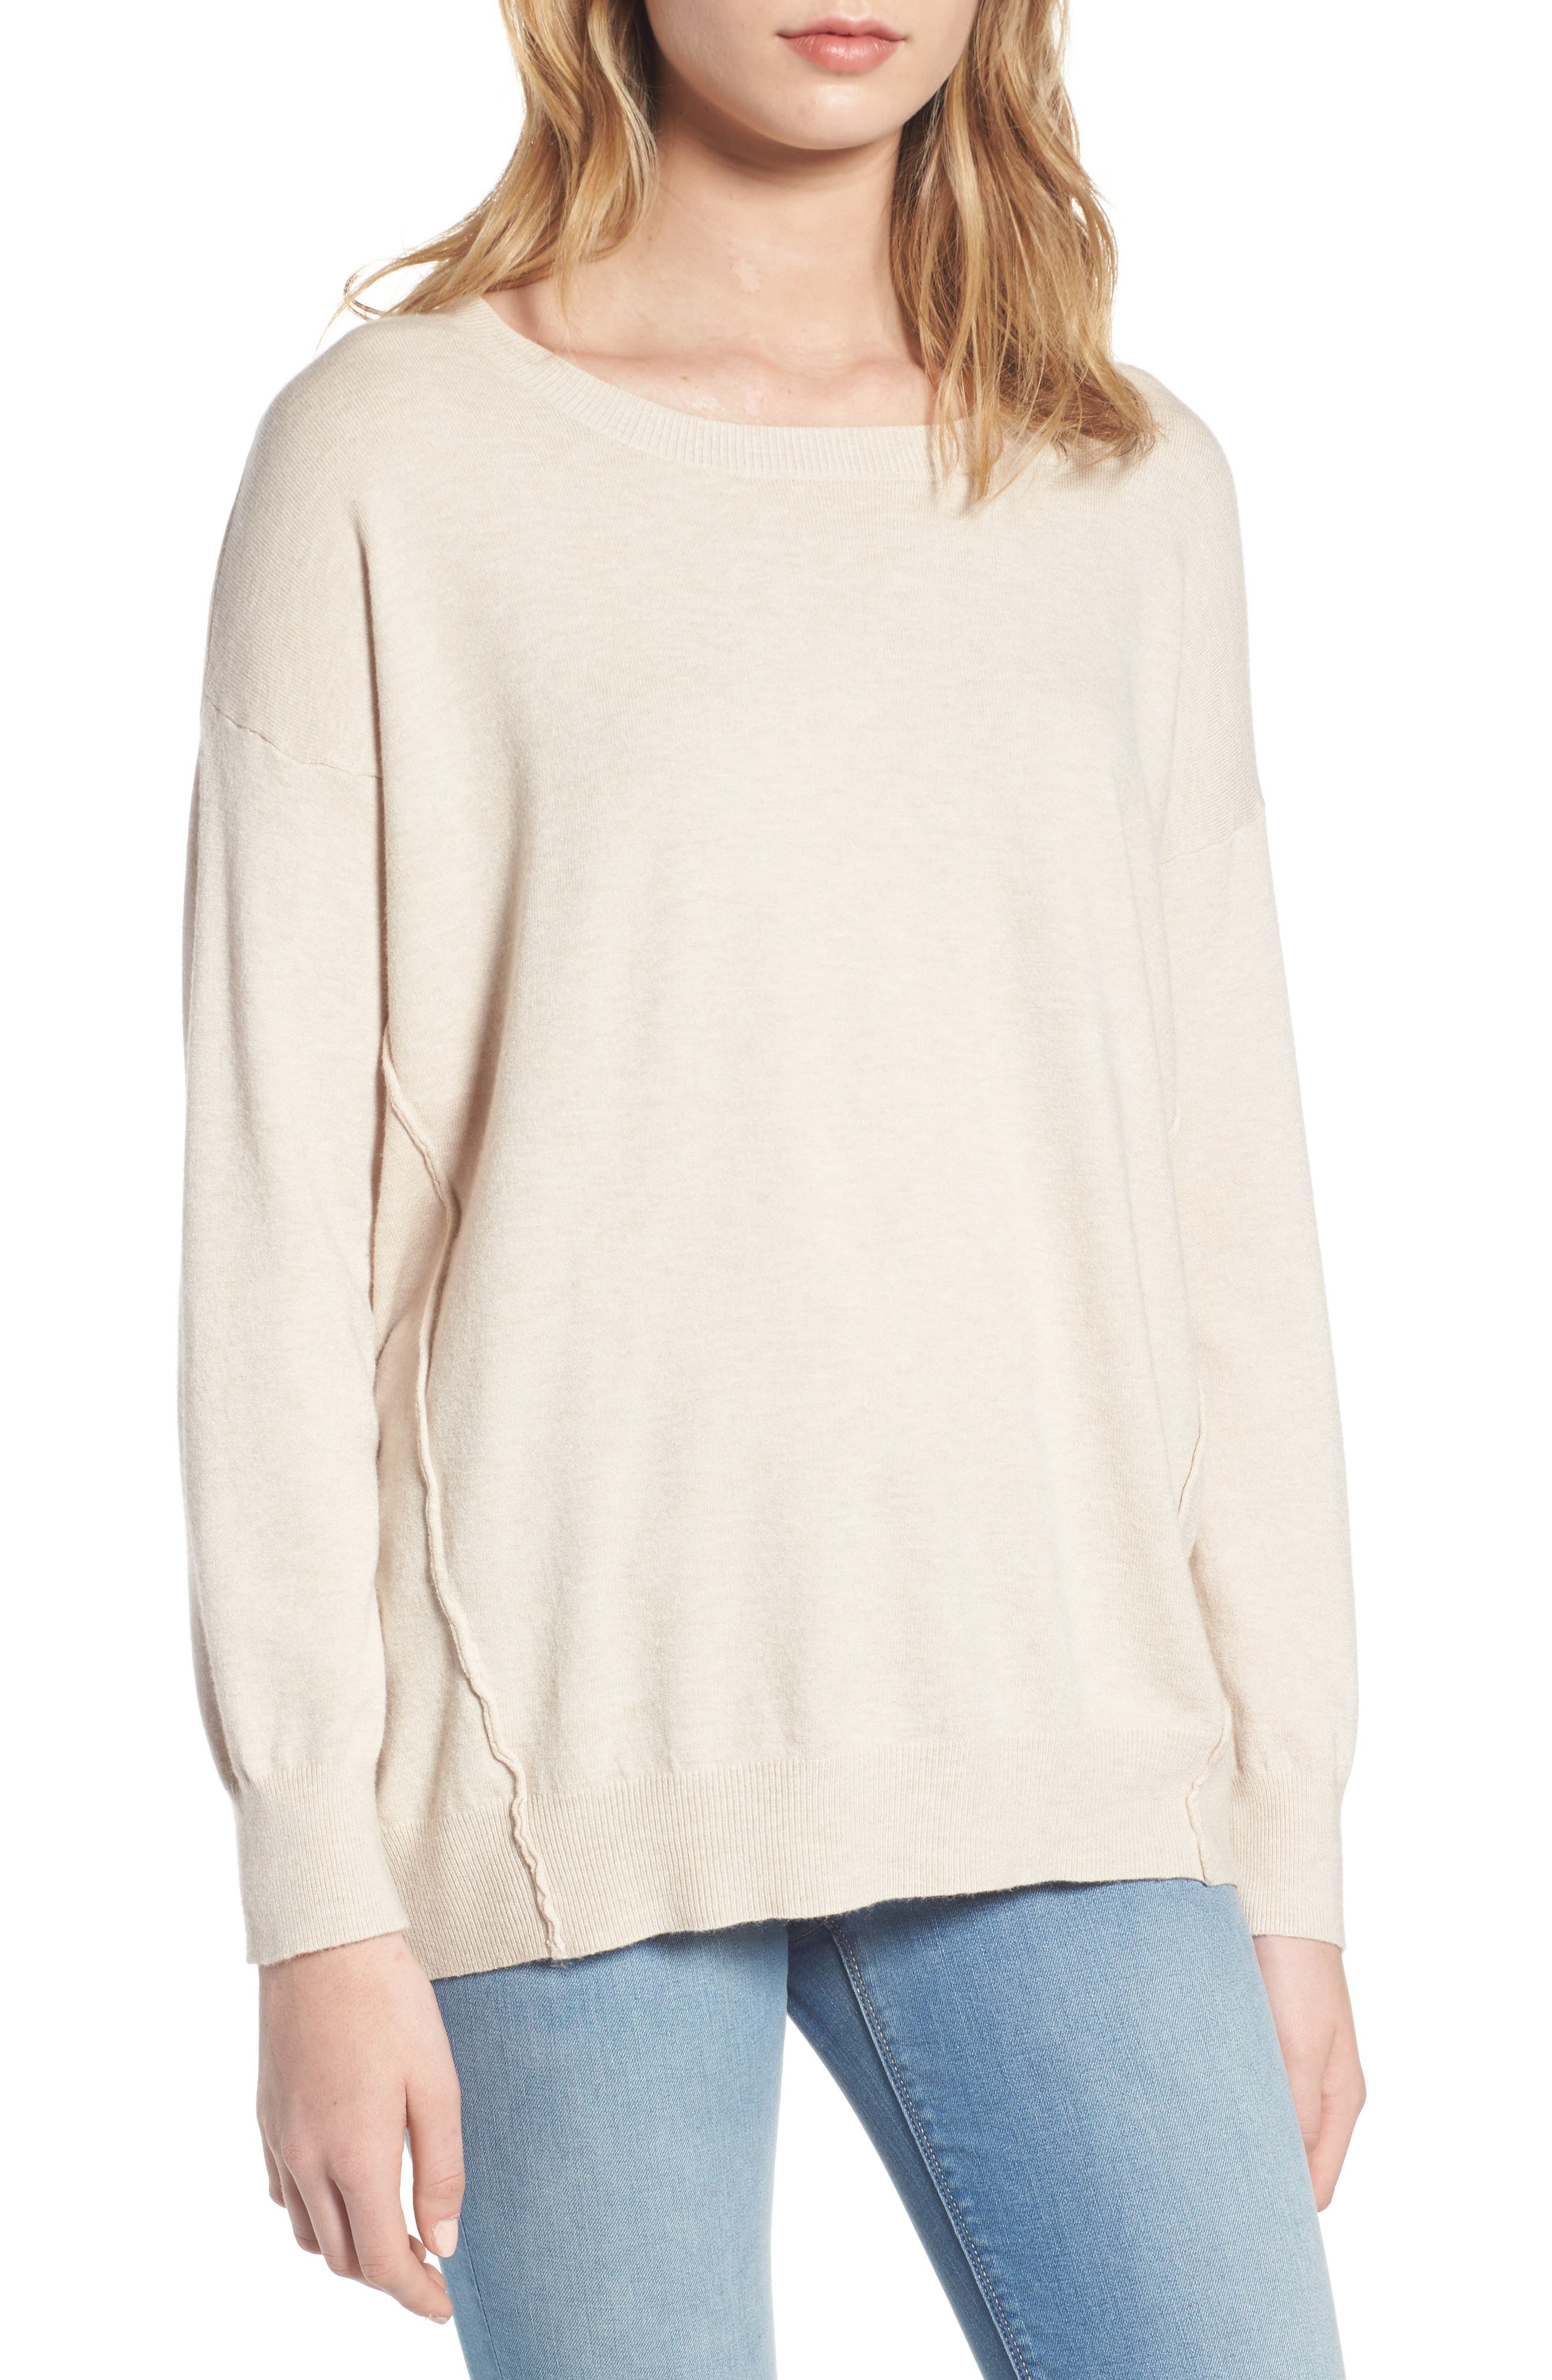 Dreamers by Debut Forward Seam Tunic Sweater